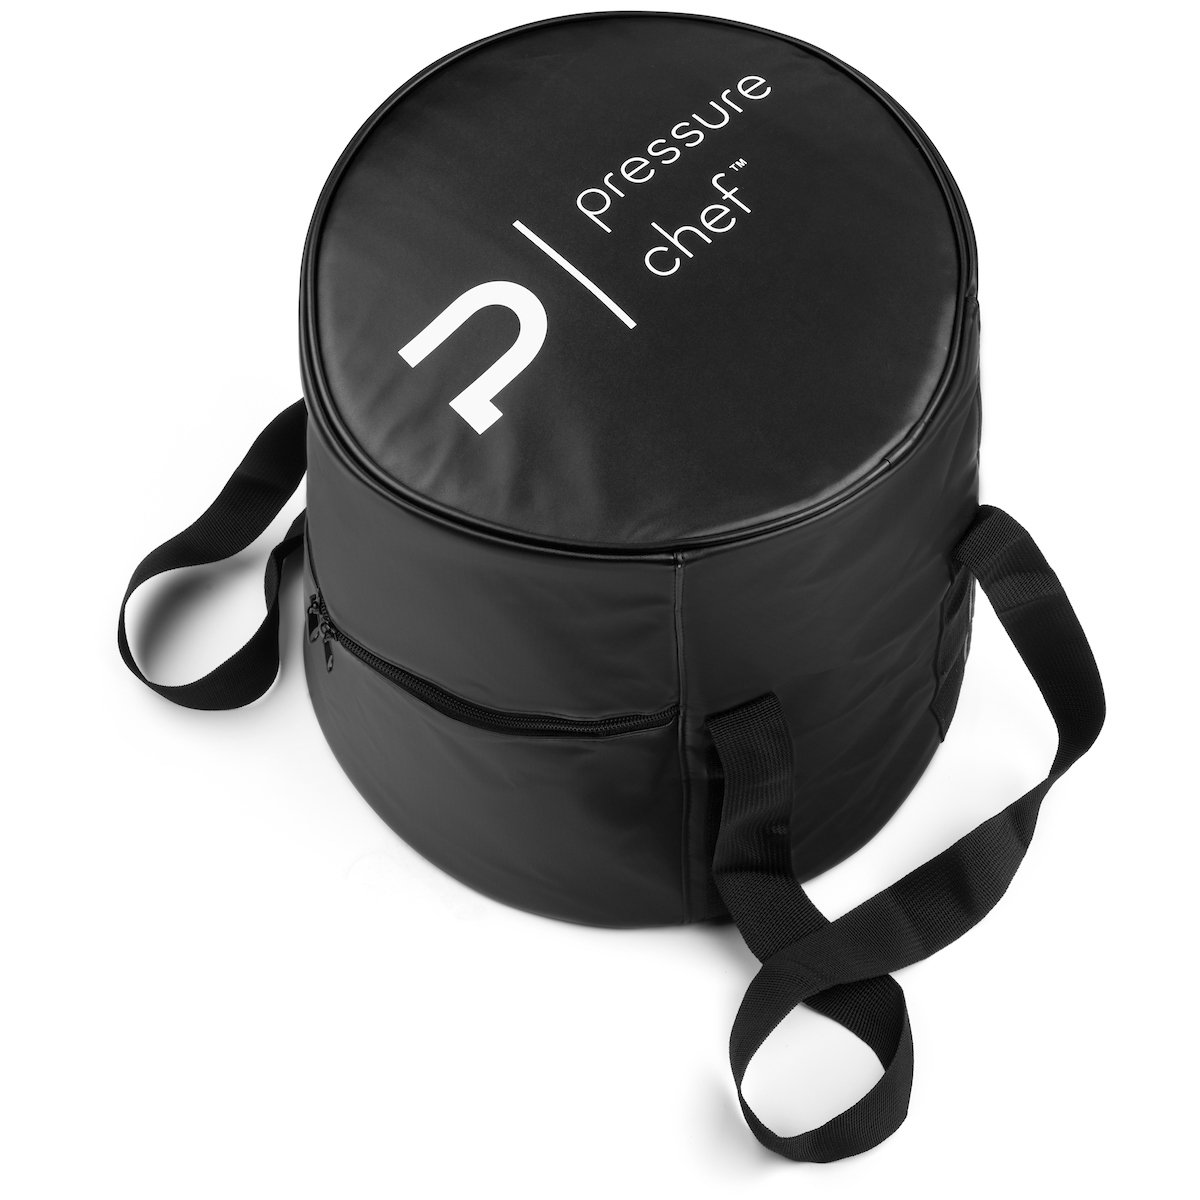 Pressure Chef - Storage & Tote Bag for Instant Pot and Electric Pressure Cookers